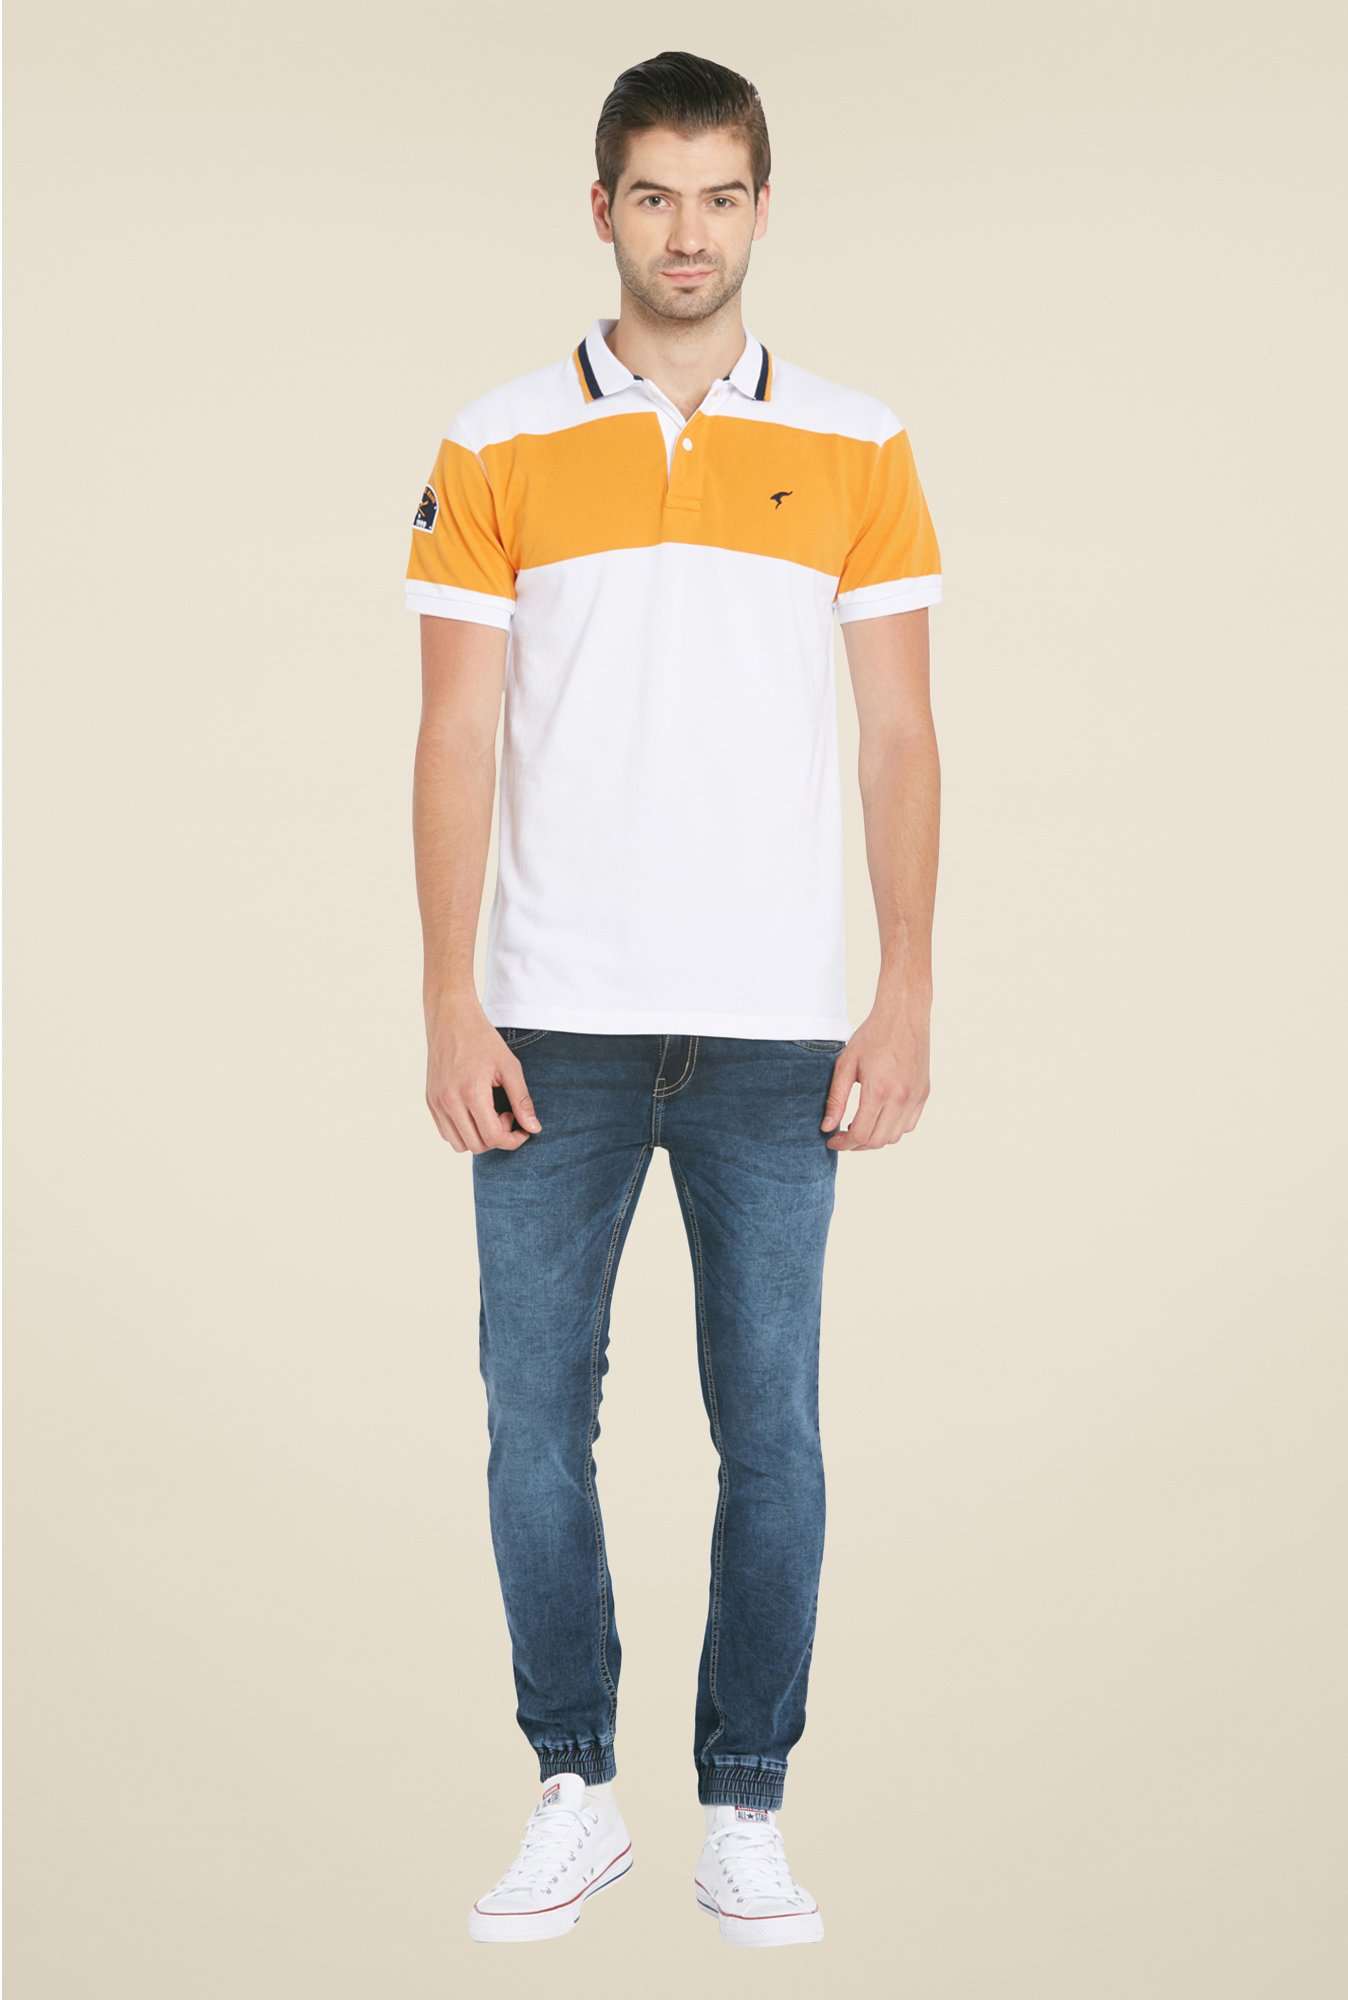 Globus White Solid Polo T Shirt